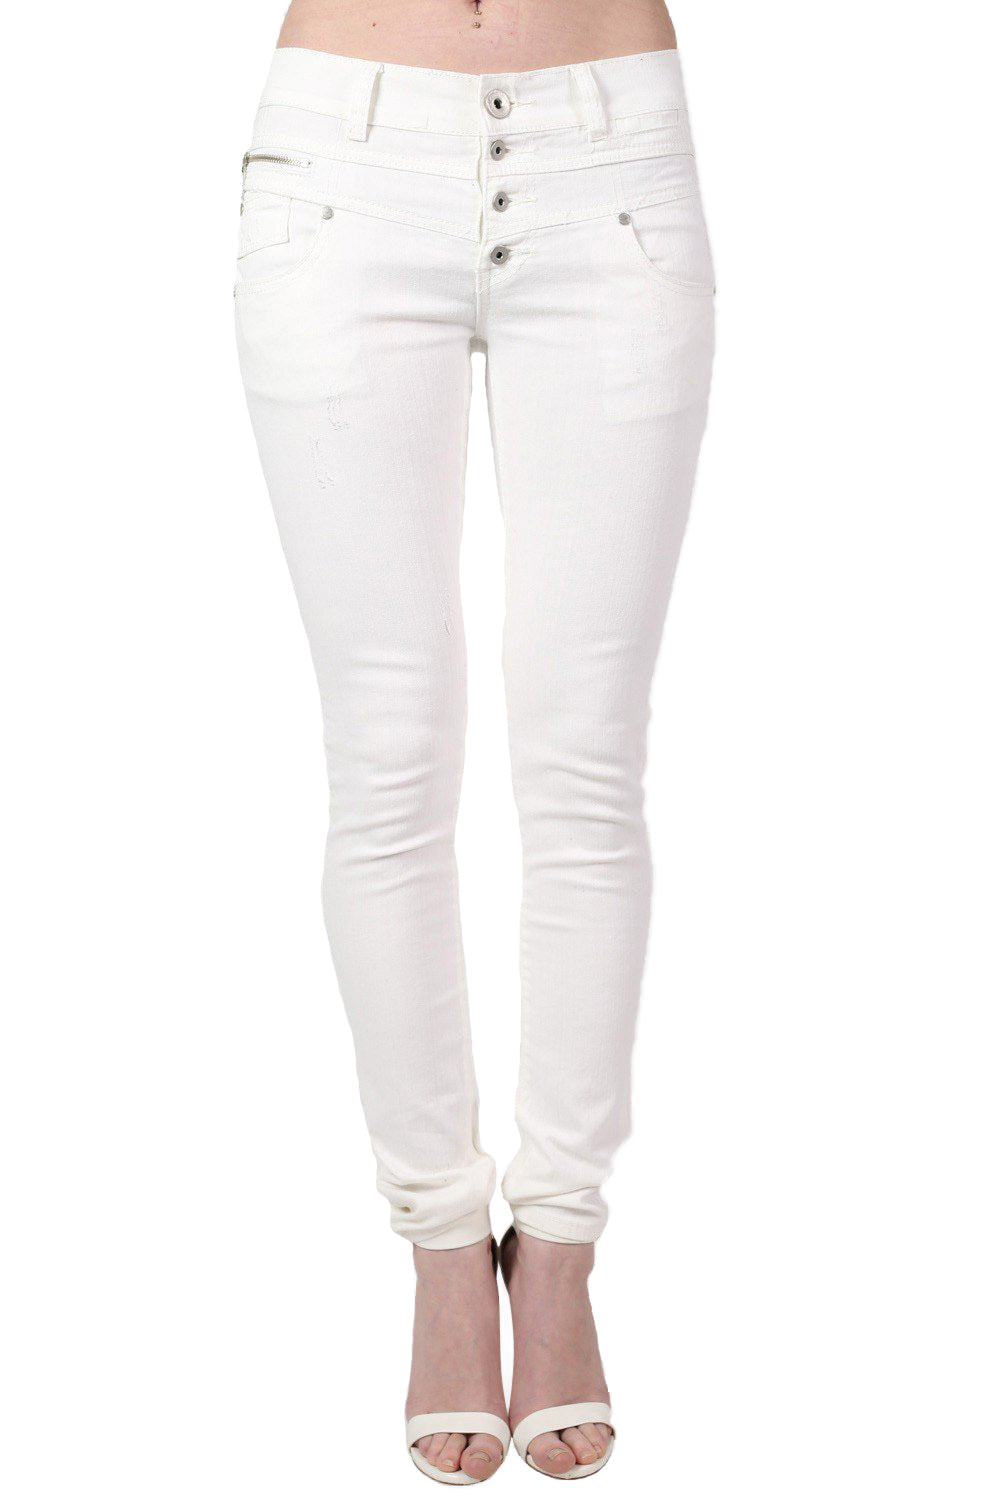 4 Button Skinny Jeans in White